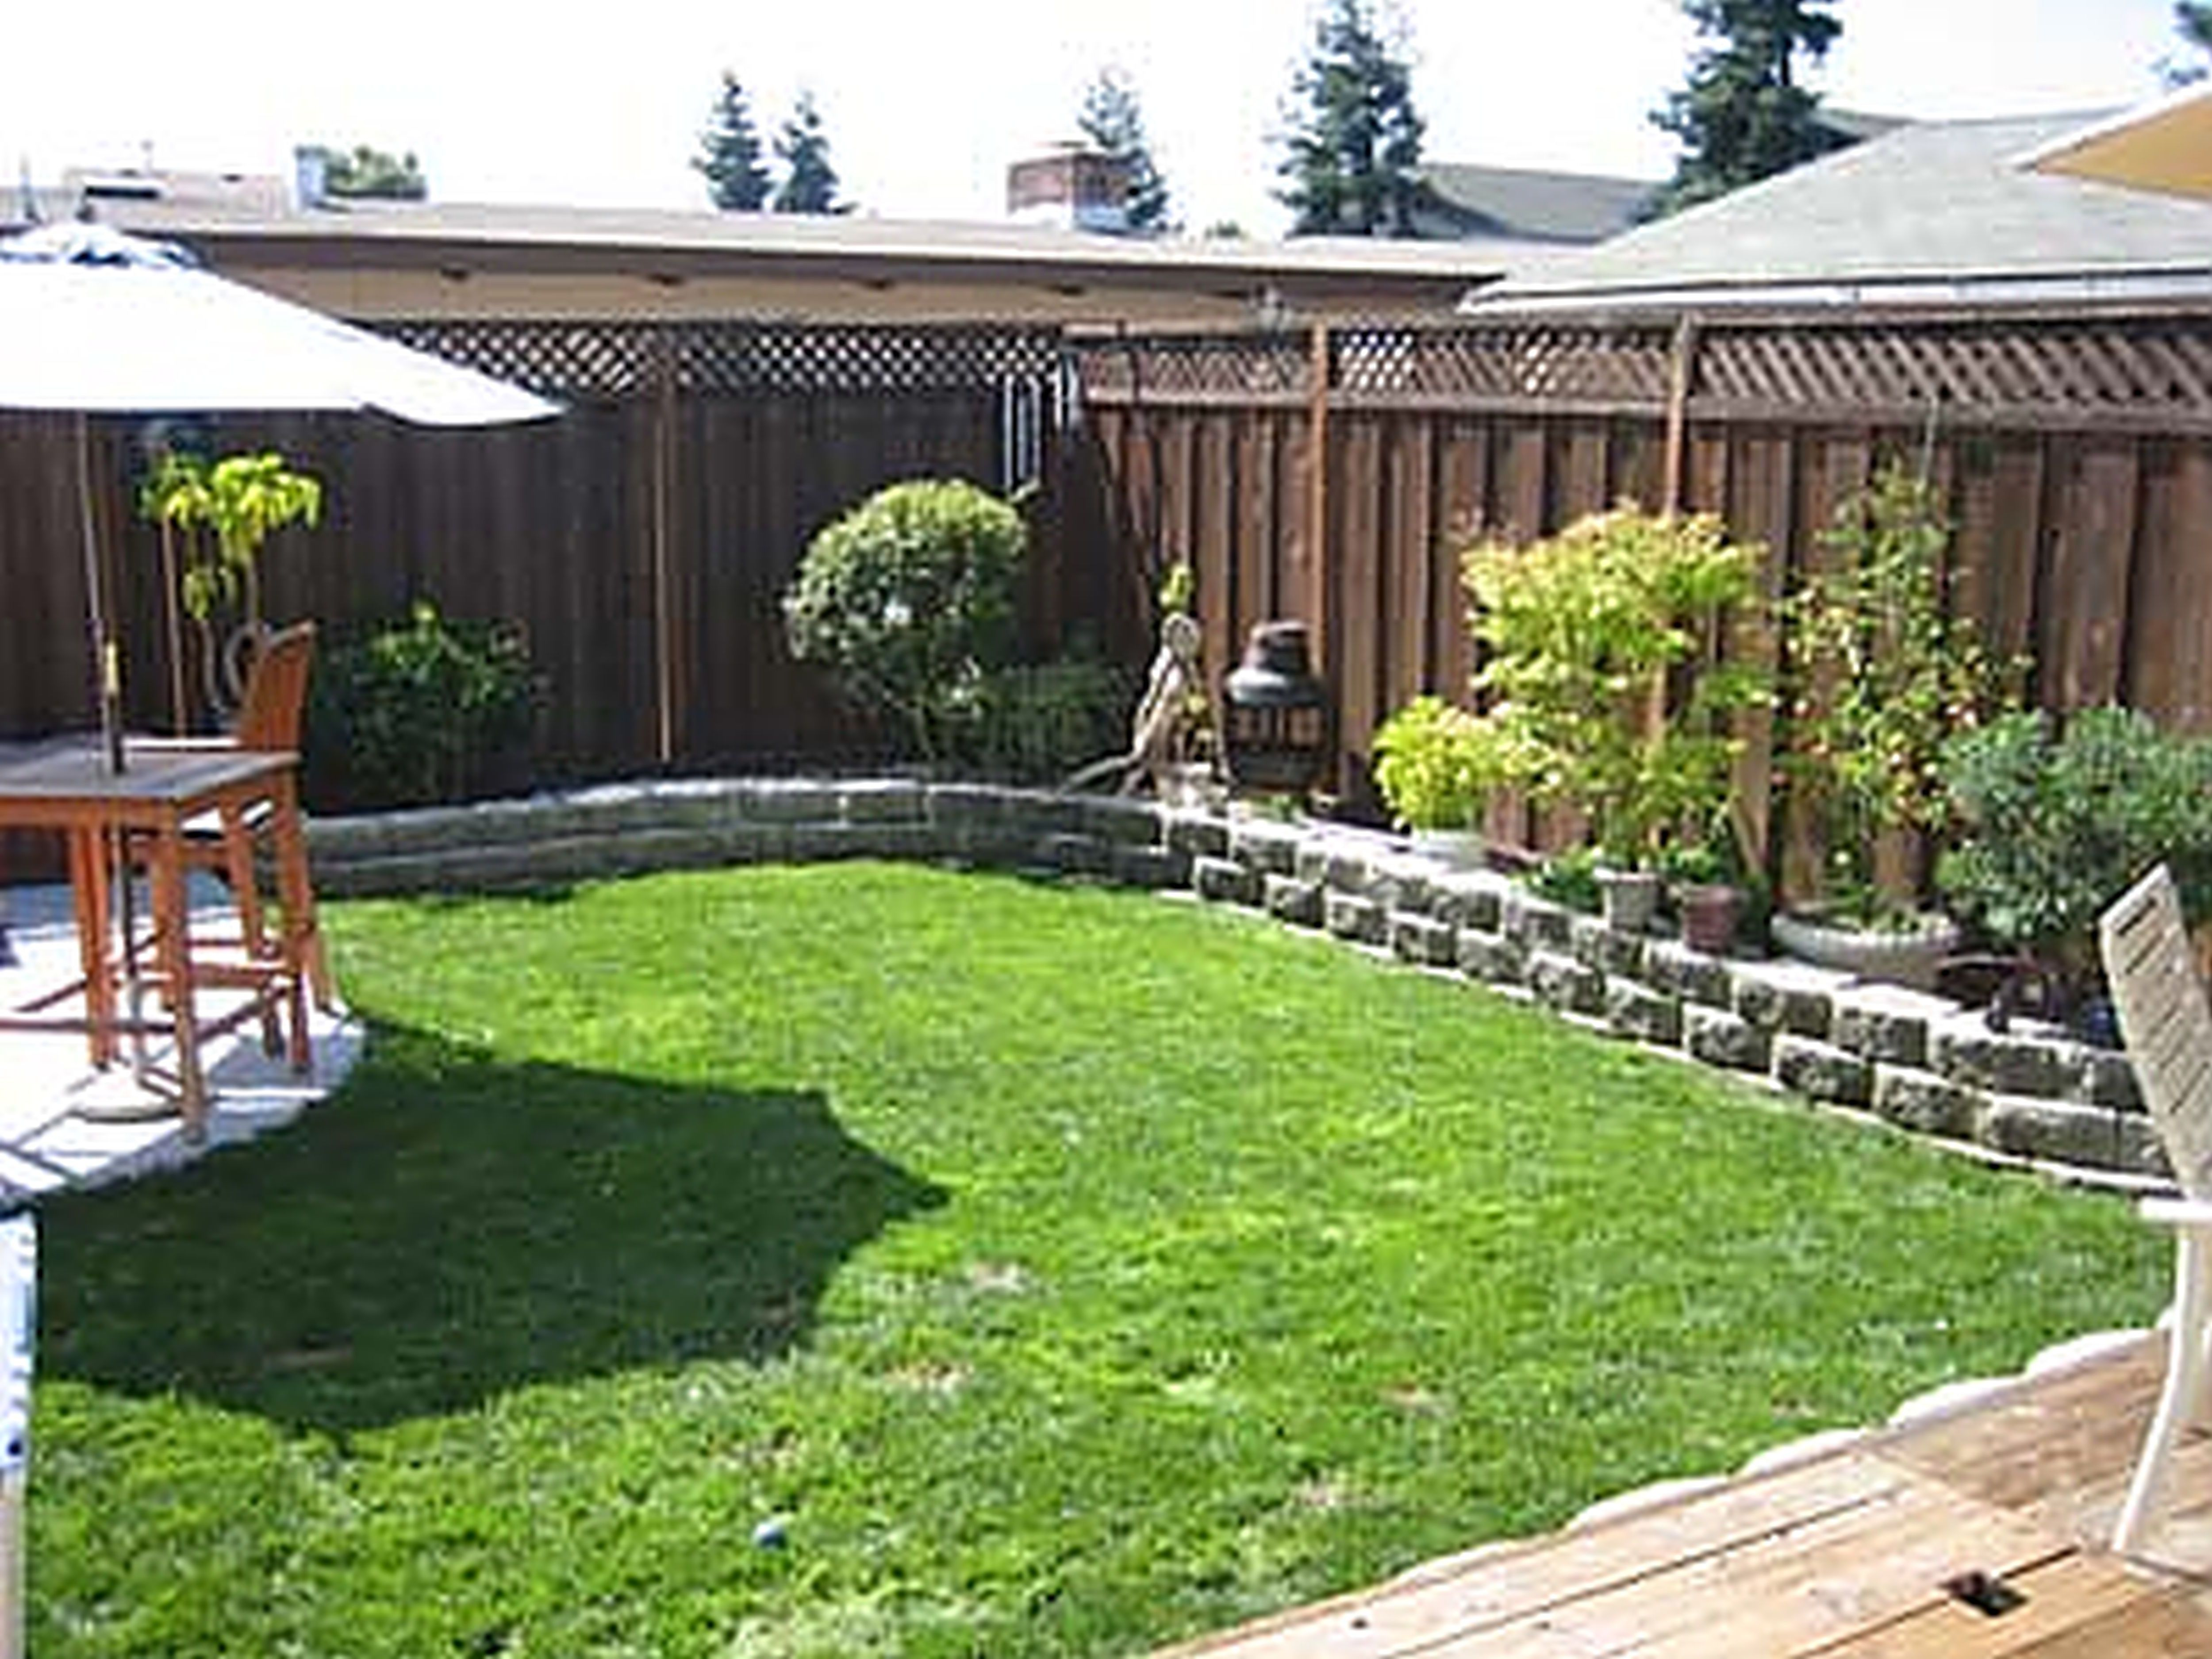 Yard landscaping ideas on a budget small backyard landscaping backyard landscape ideas cheap - Design for backyard landscaping ...